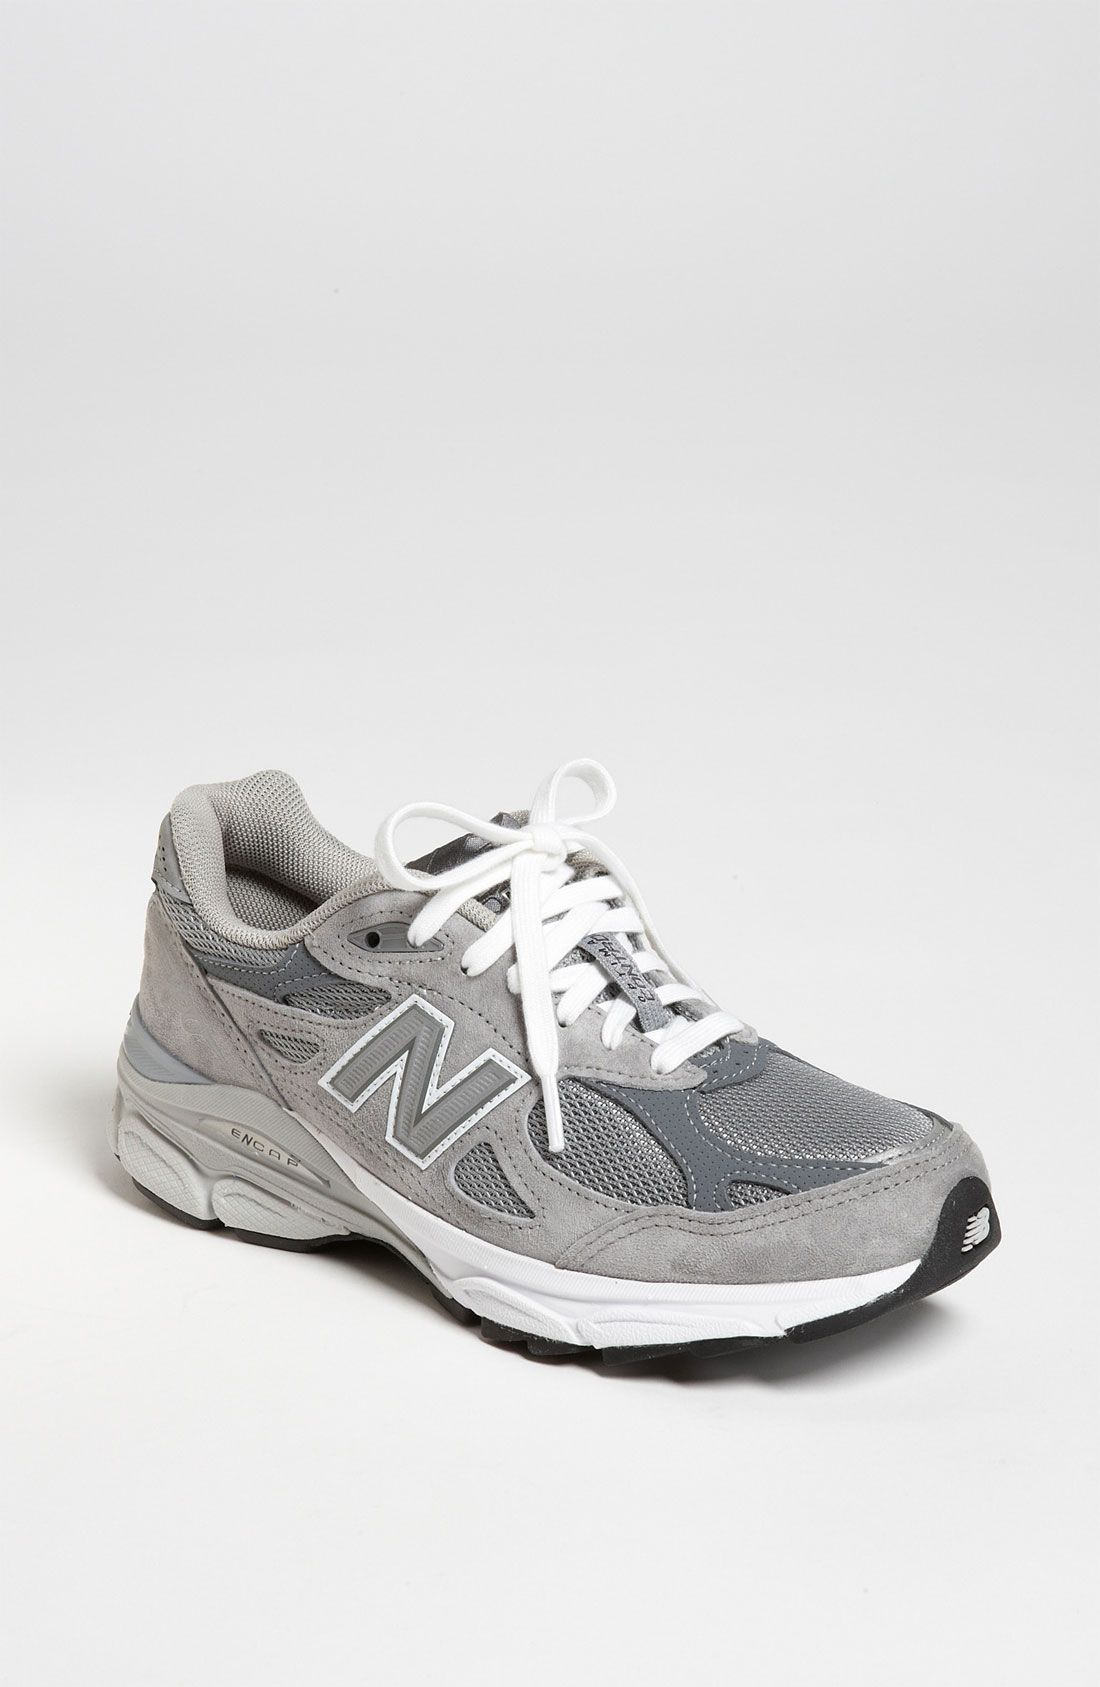 the best attitude d05ae cadcc New Balance '990 Premium' Running Shoe (Women) | Fit in 2019 ...